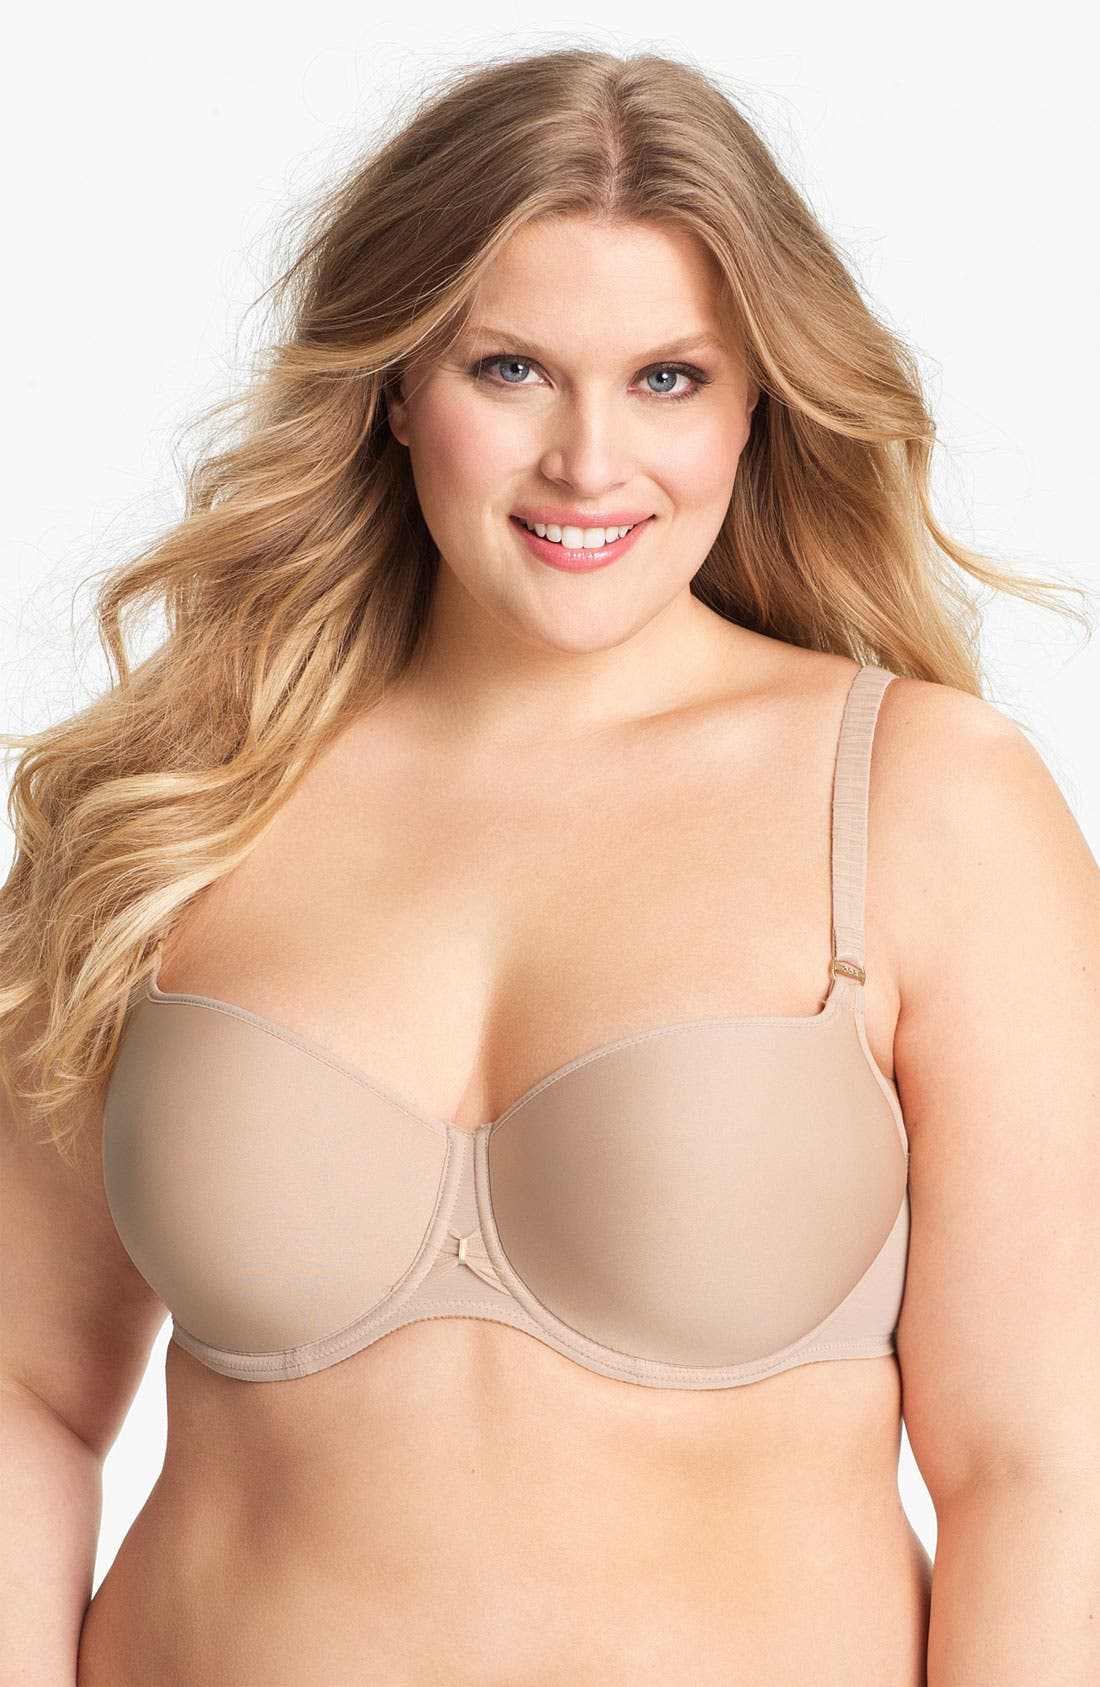 Alternate Image 1 Selected - Chantelle Intimates 'So Sublime' Underwire Demi Bra